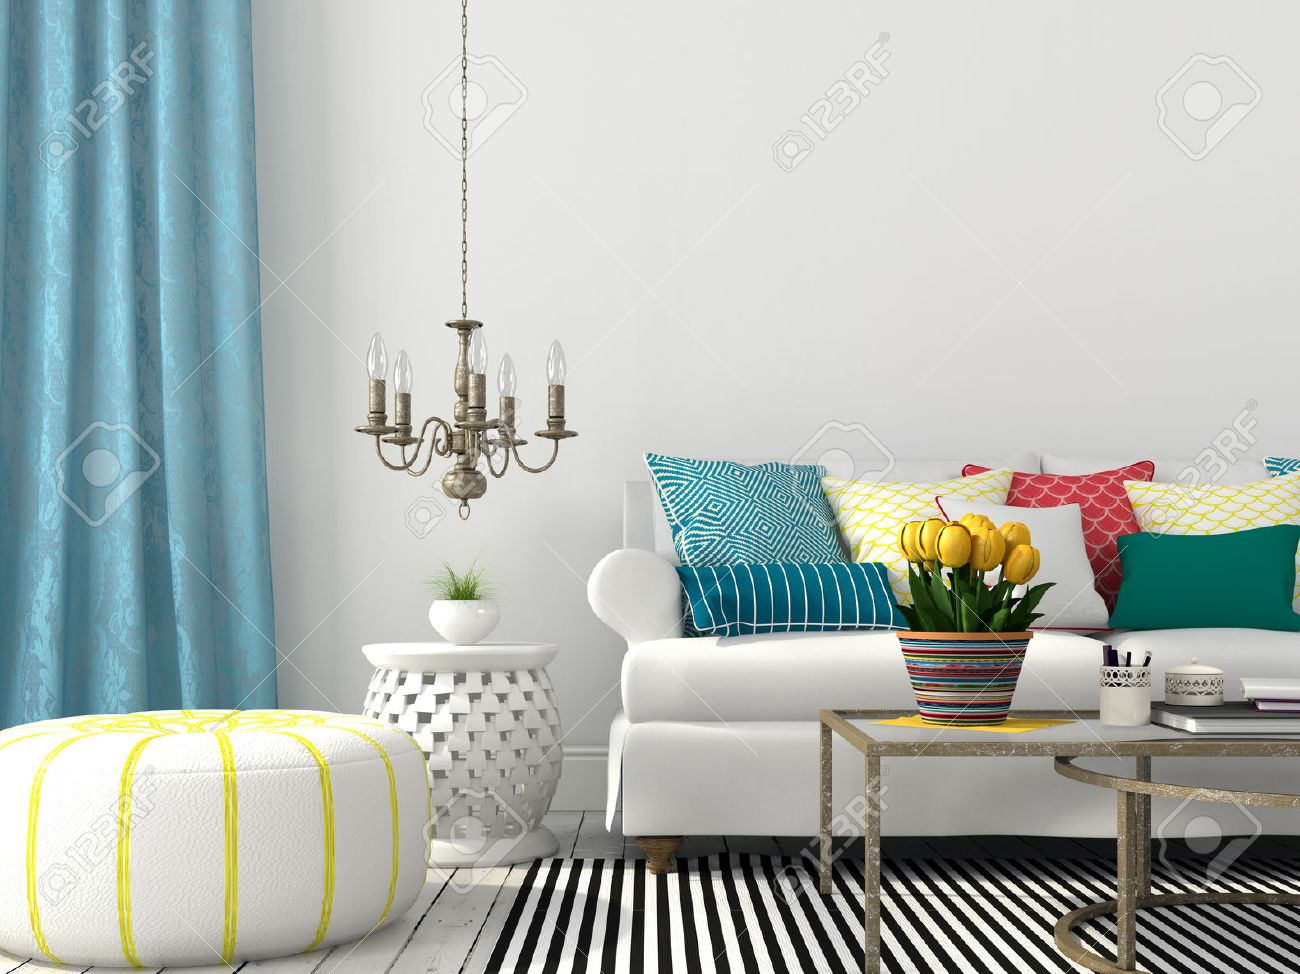 Blue curtains for living room - Stock Photo White Interior Of Living Room With Colorful Pillows And Blue Curtain